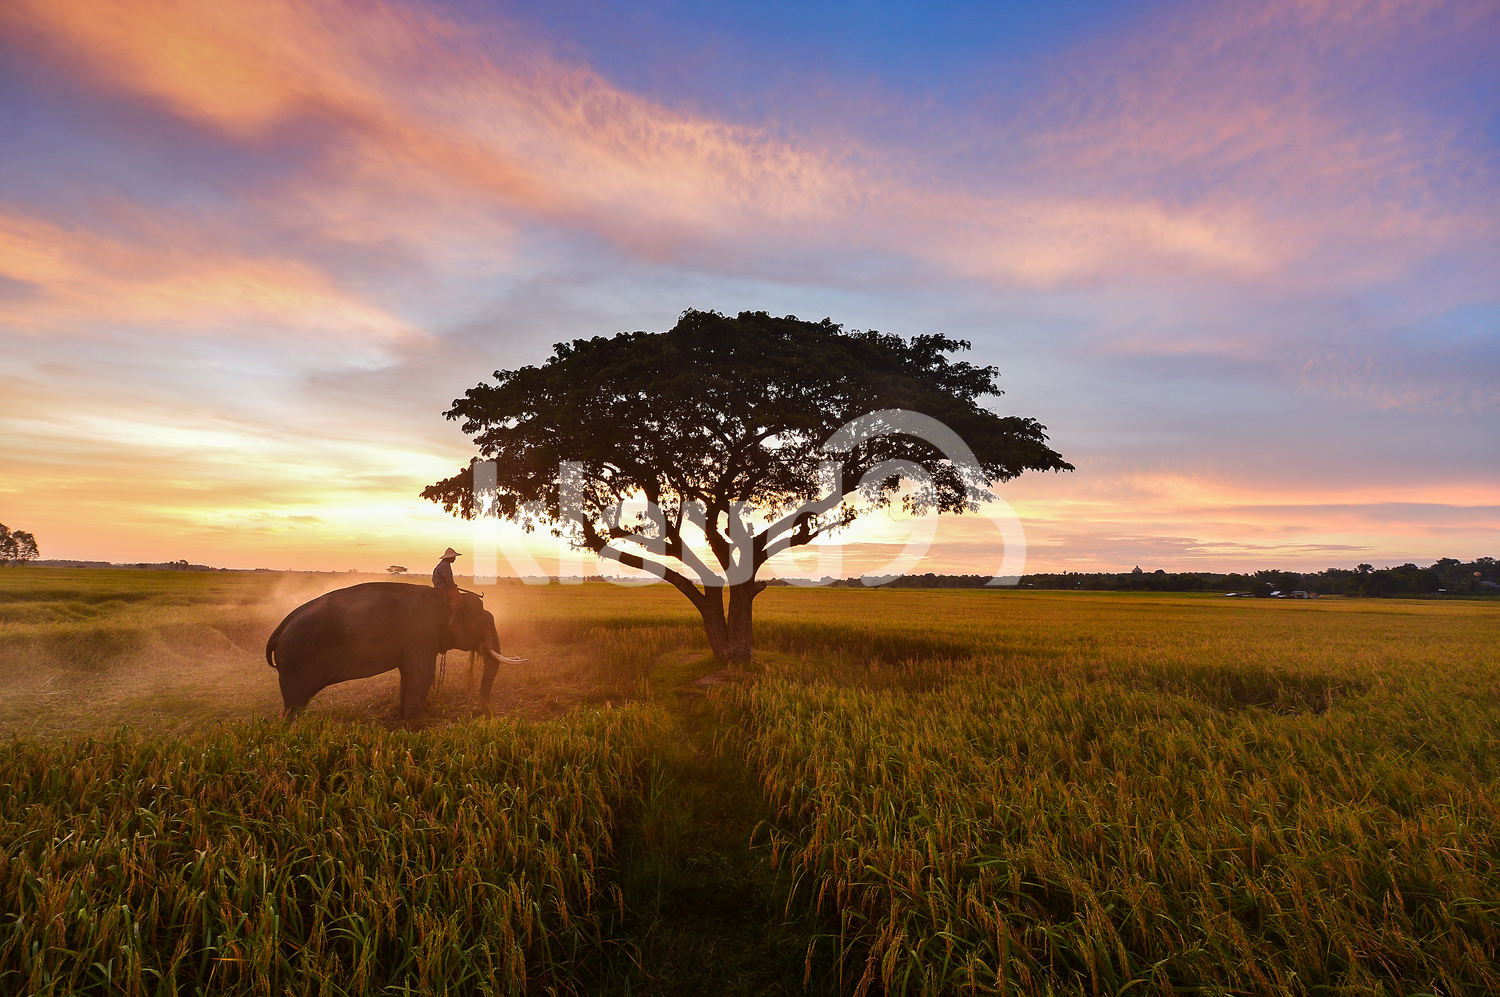 Farmer and elephant during sunrise in the fields